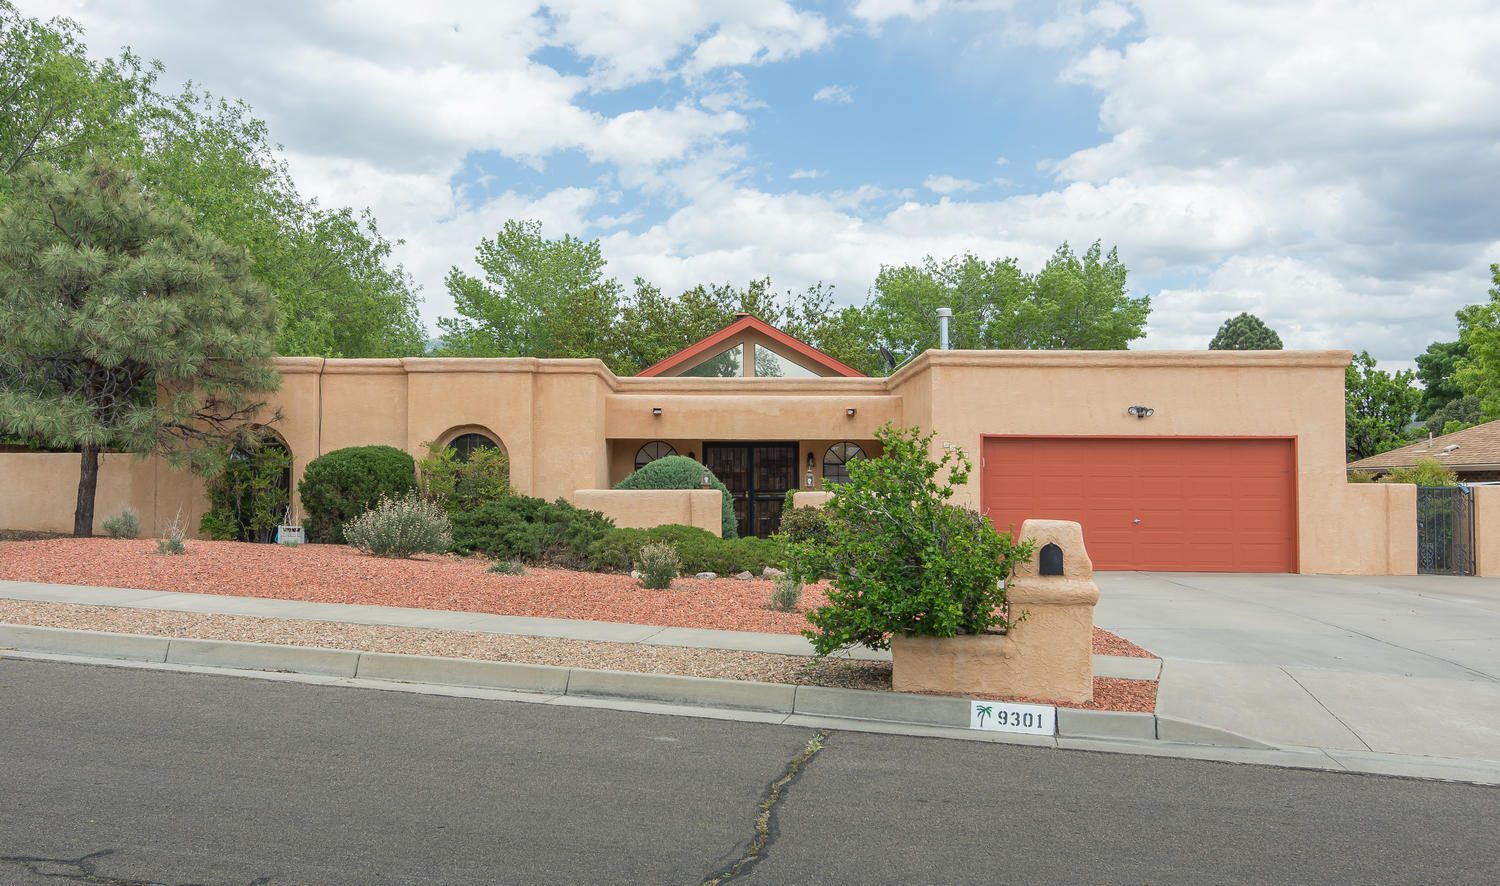 9301 LAYTON LOOP NE, ALBUQUERQUE, NM 87111